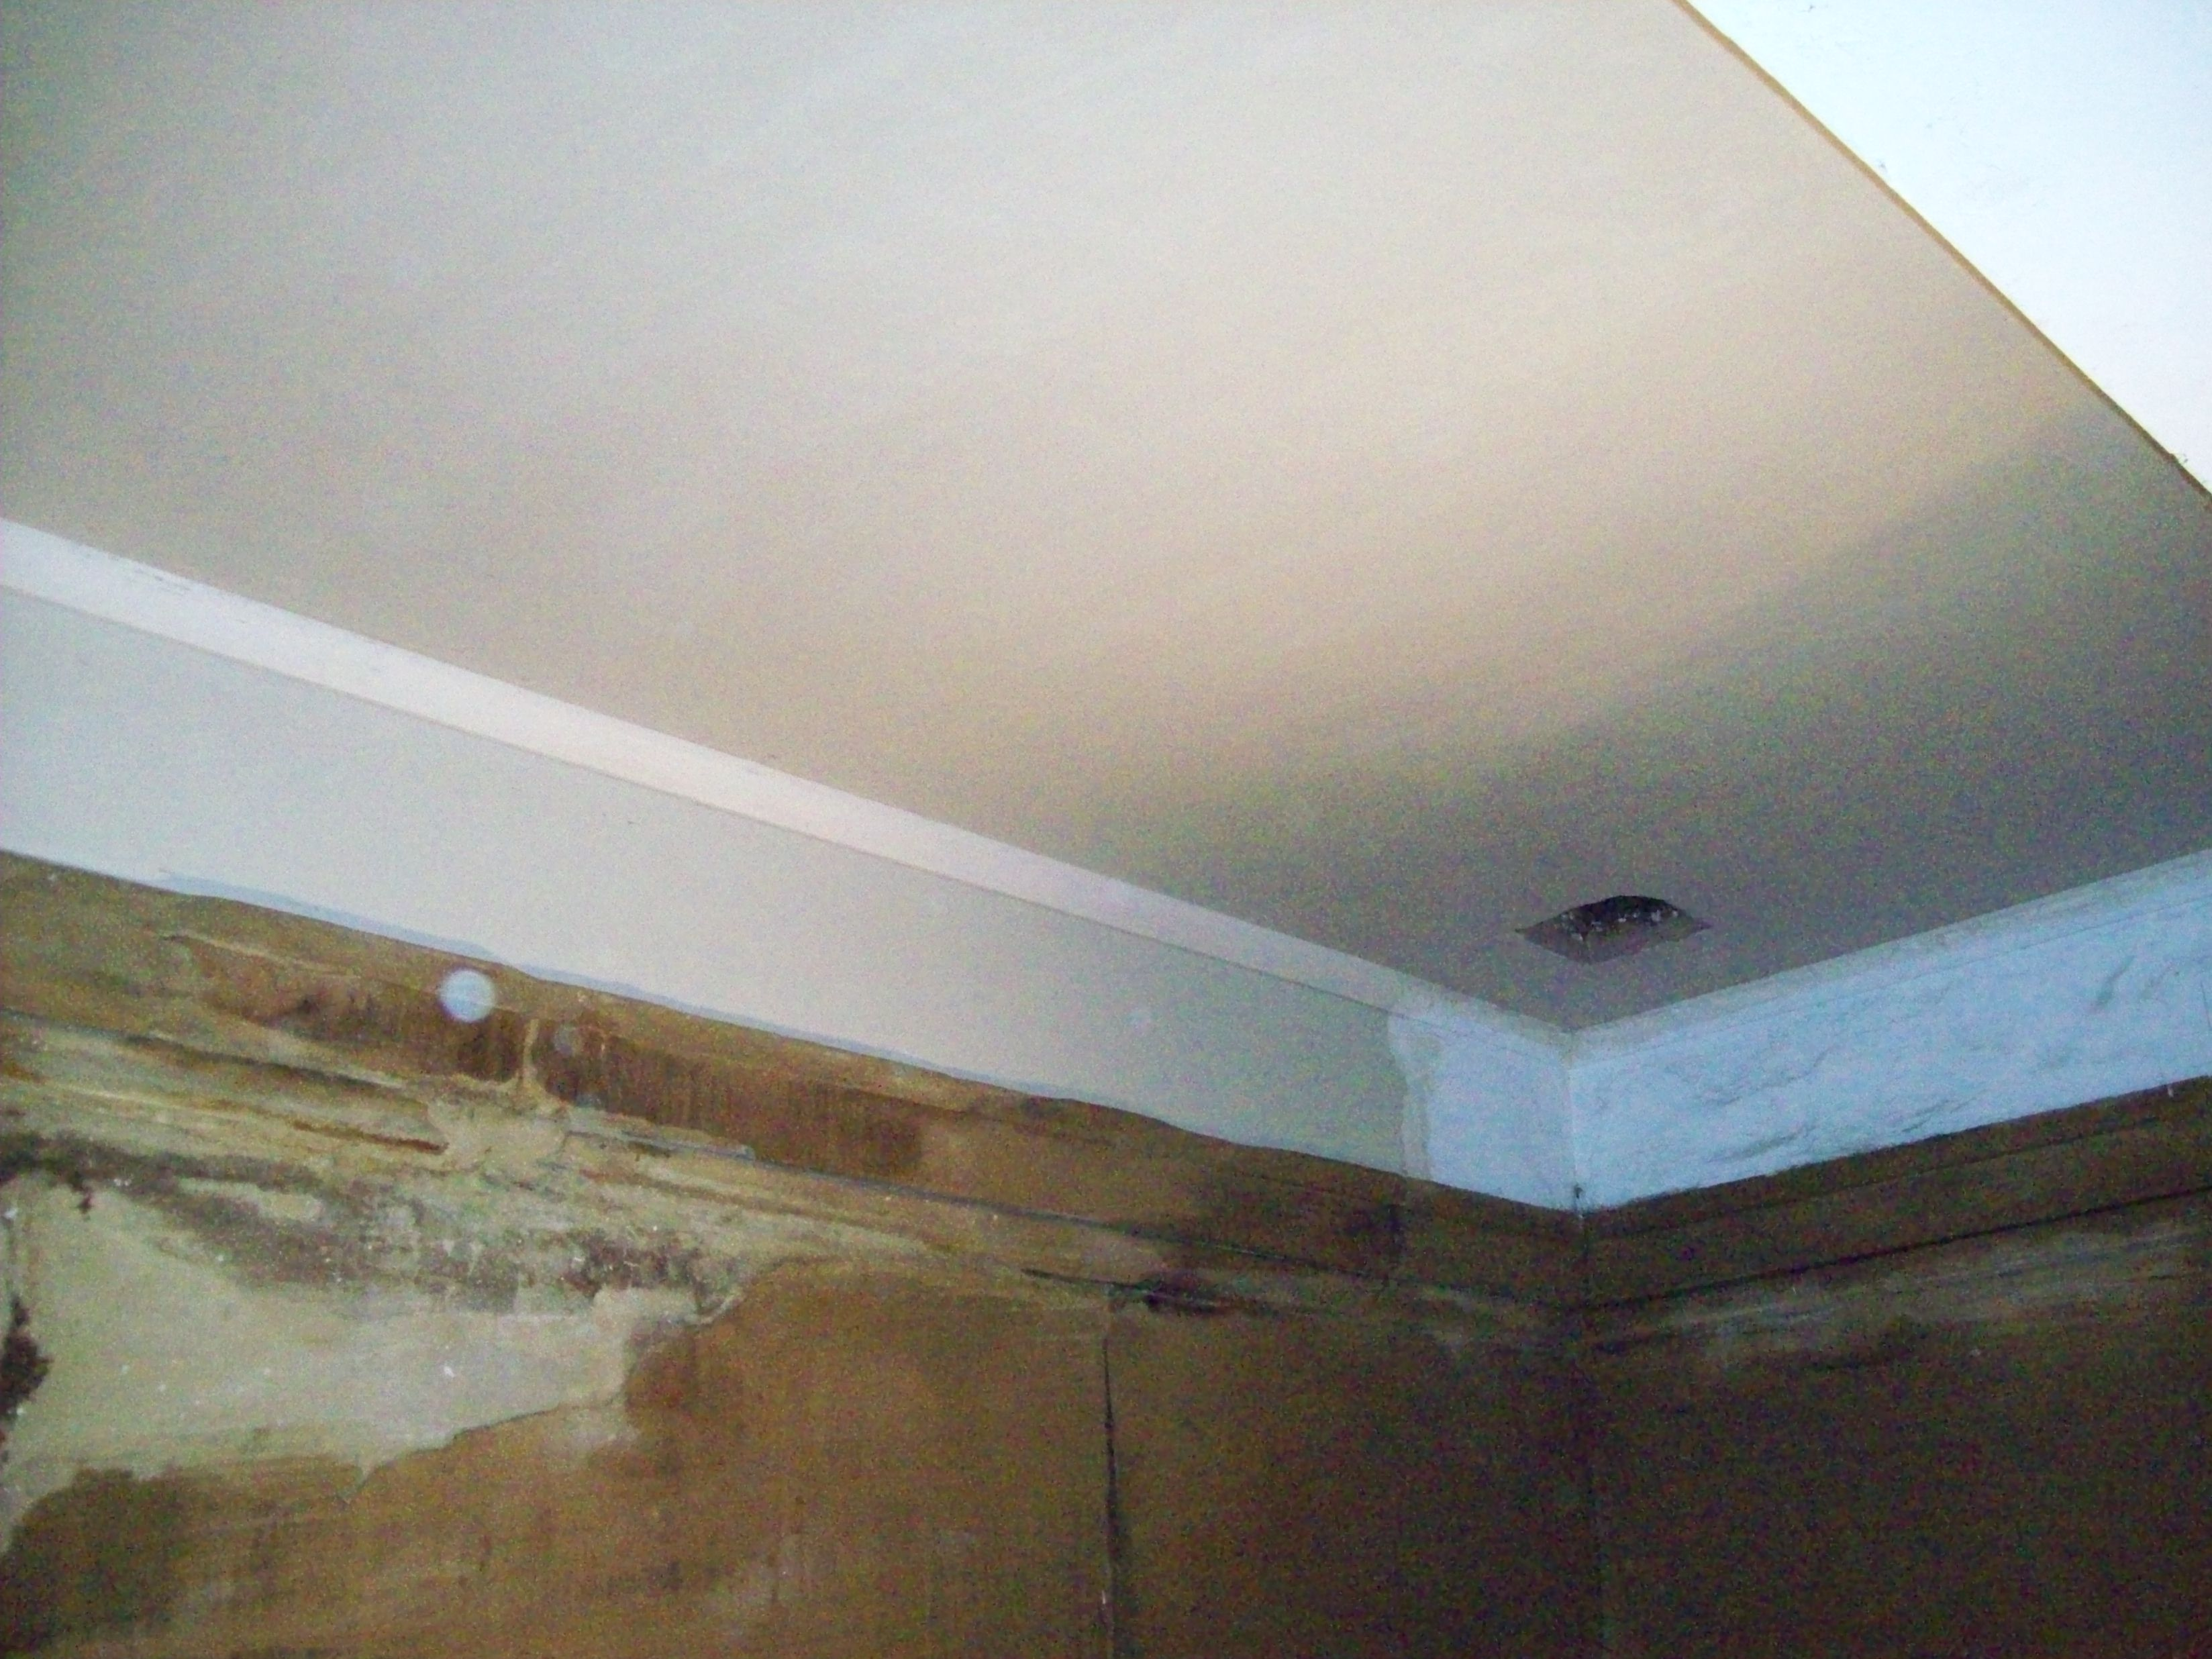 lime plastering, sand and lime finish coat new lath and plaster ceiling